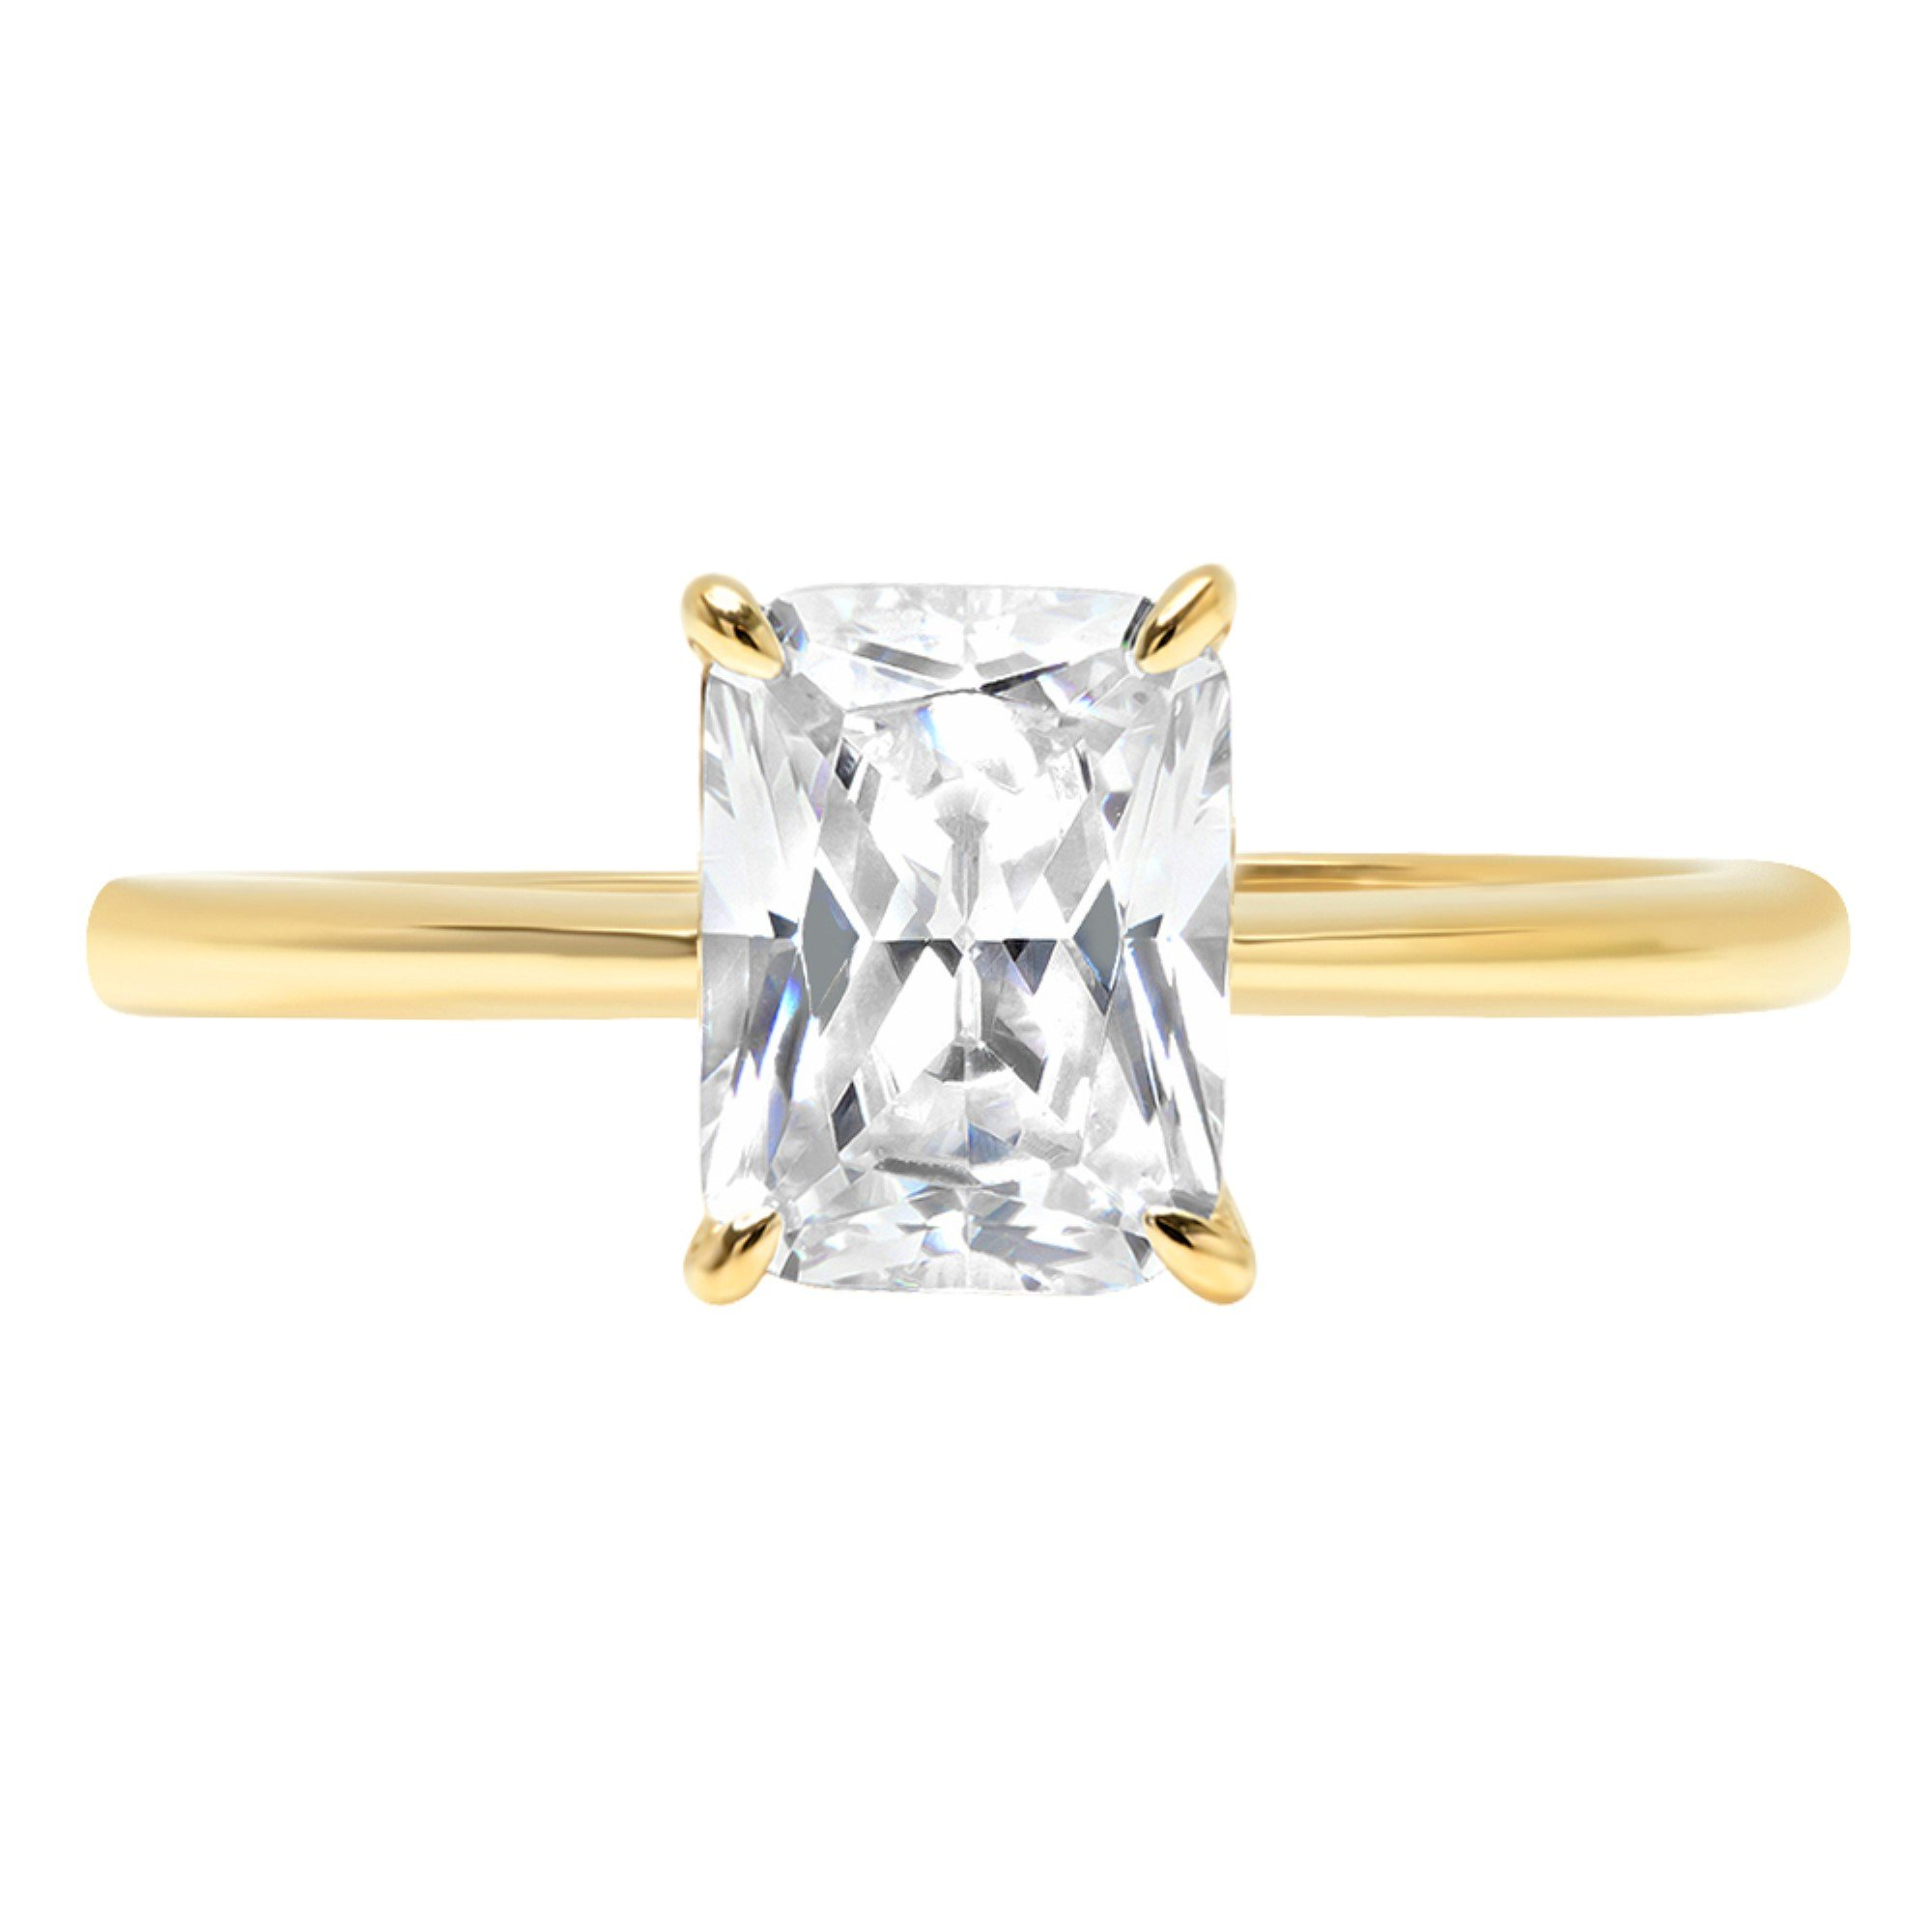 Radiant Brilliant Cut Classic Solitaire Designer Wedding Bridal Statement Anniversary Engagement Promise Ring Solid 14k Yellow Gold, 2.7ct, 5 by Clara Pucci (Image #3)